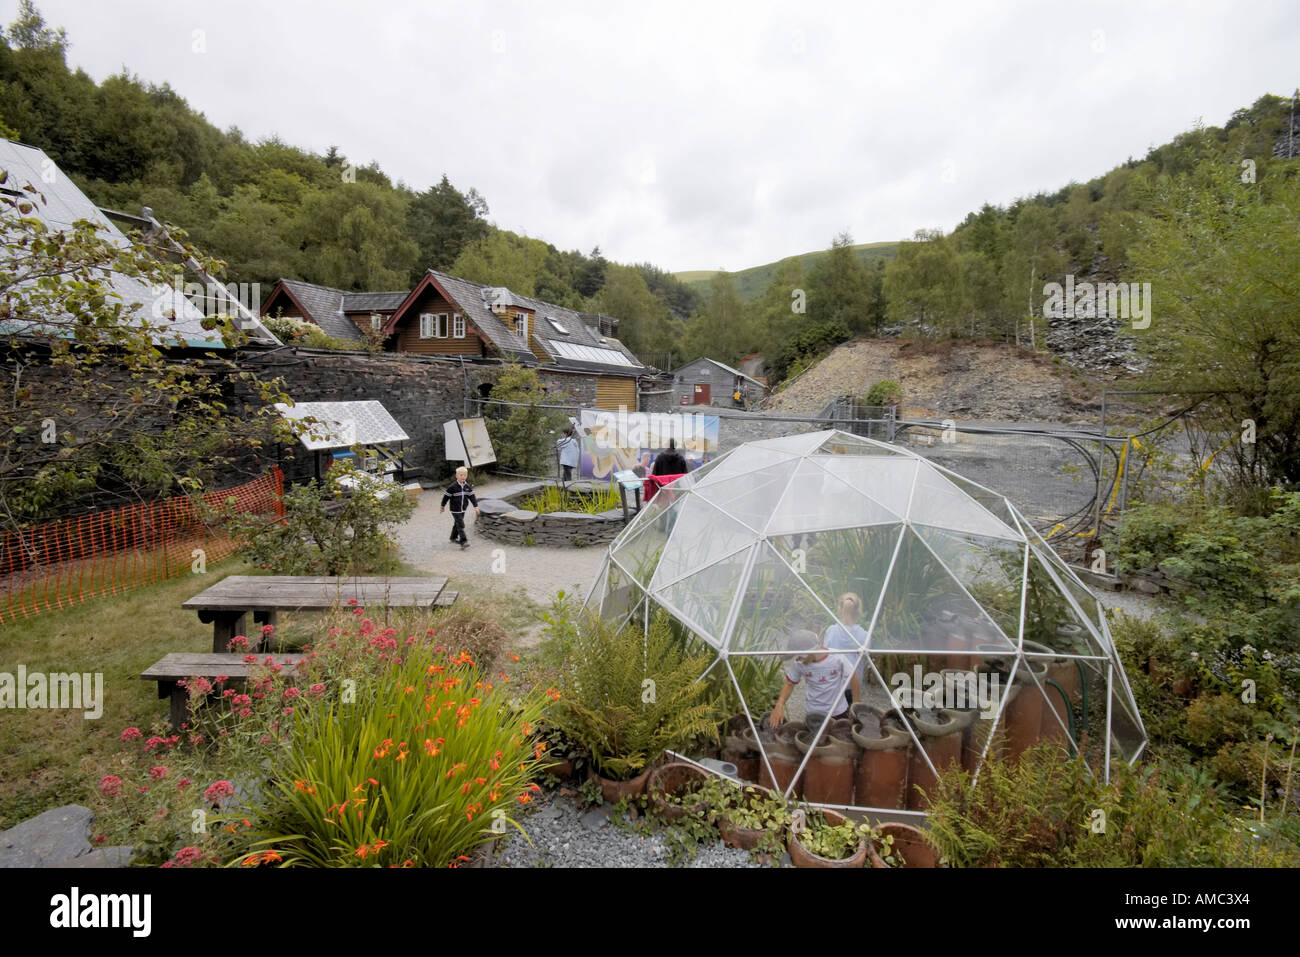 the geodesic dome greenhouse at the Centre for Alternative Technology Machynlleth Wales - Stock Image